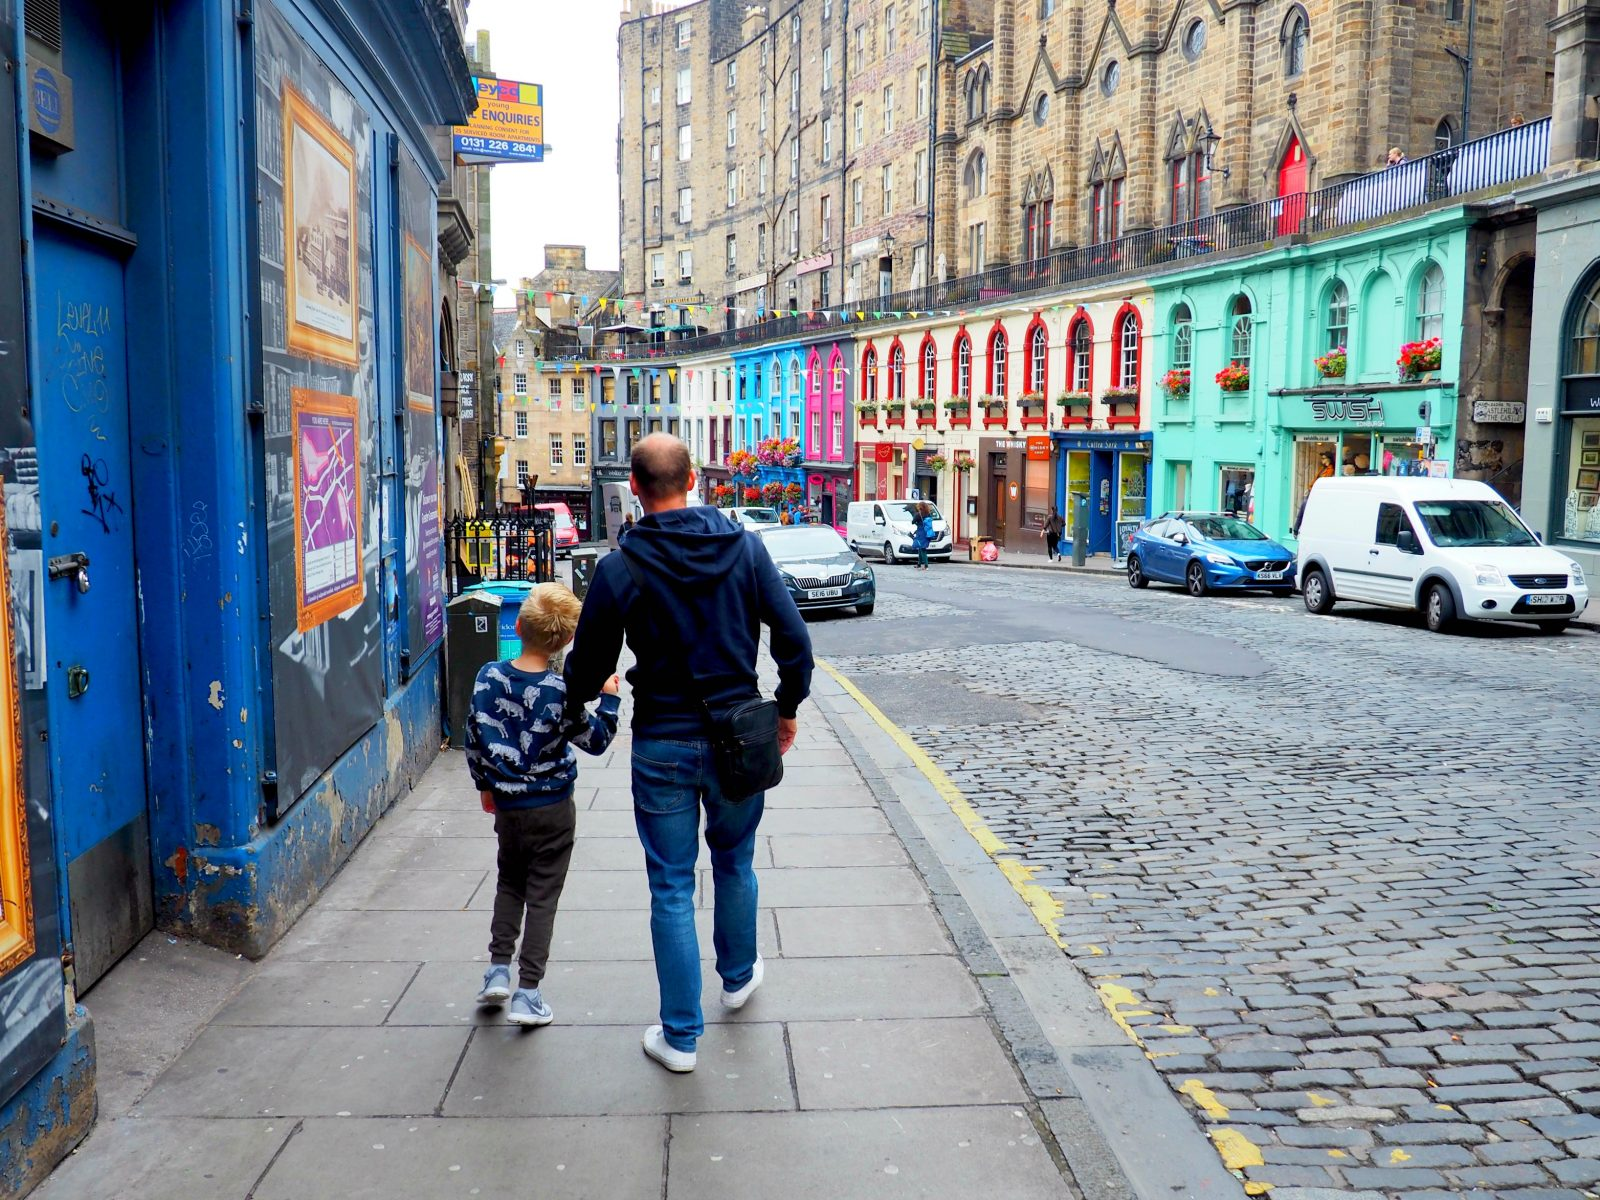 Our Family Trip to Edinburgh with Virgin Trains